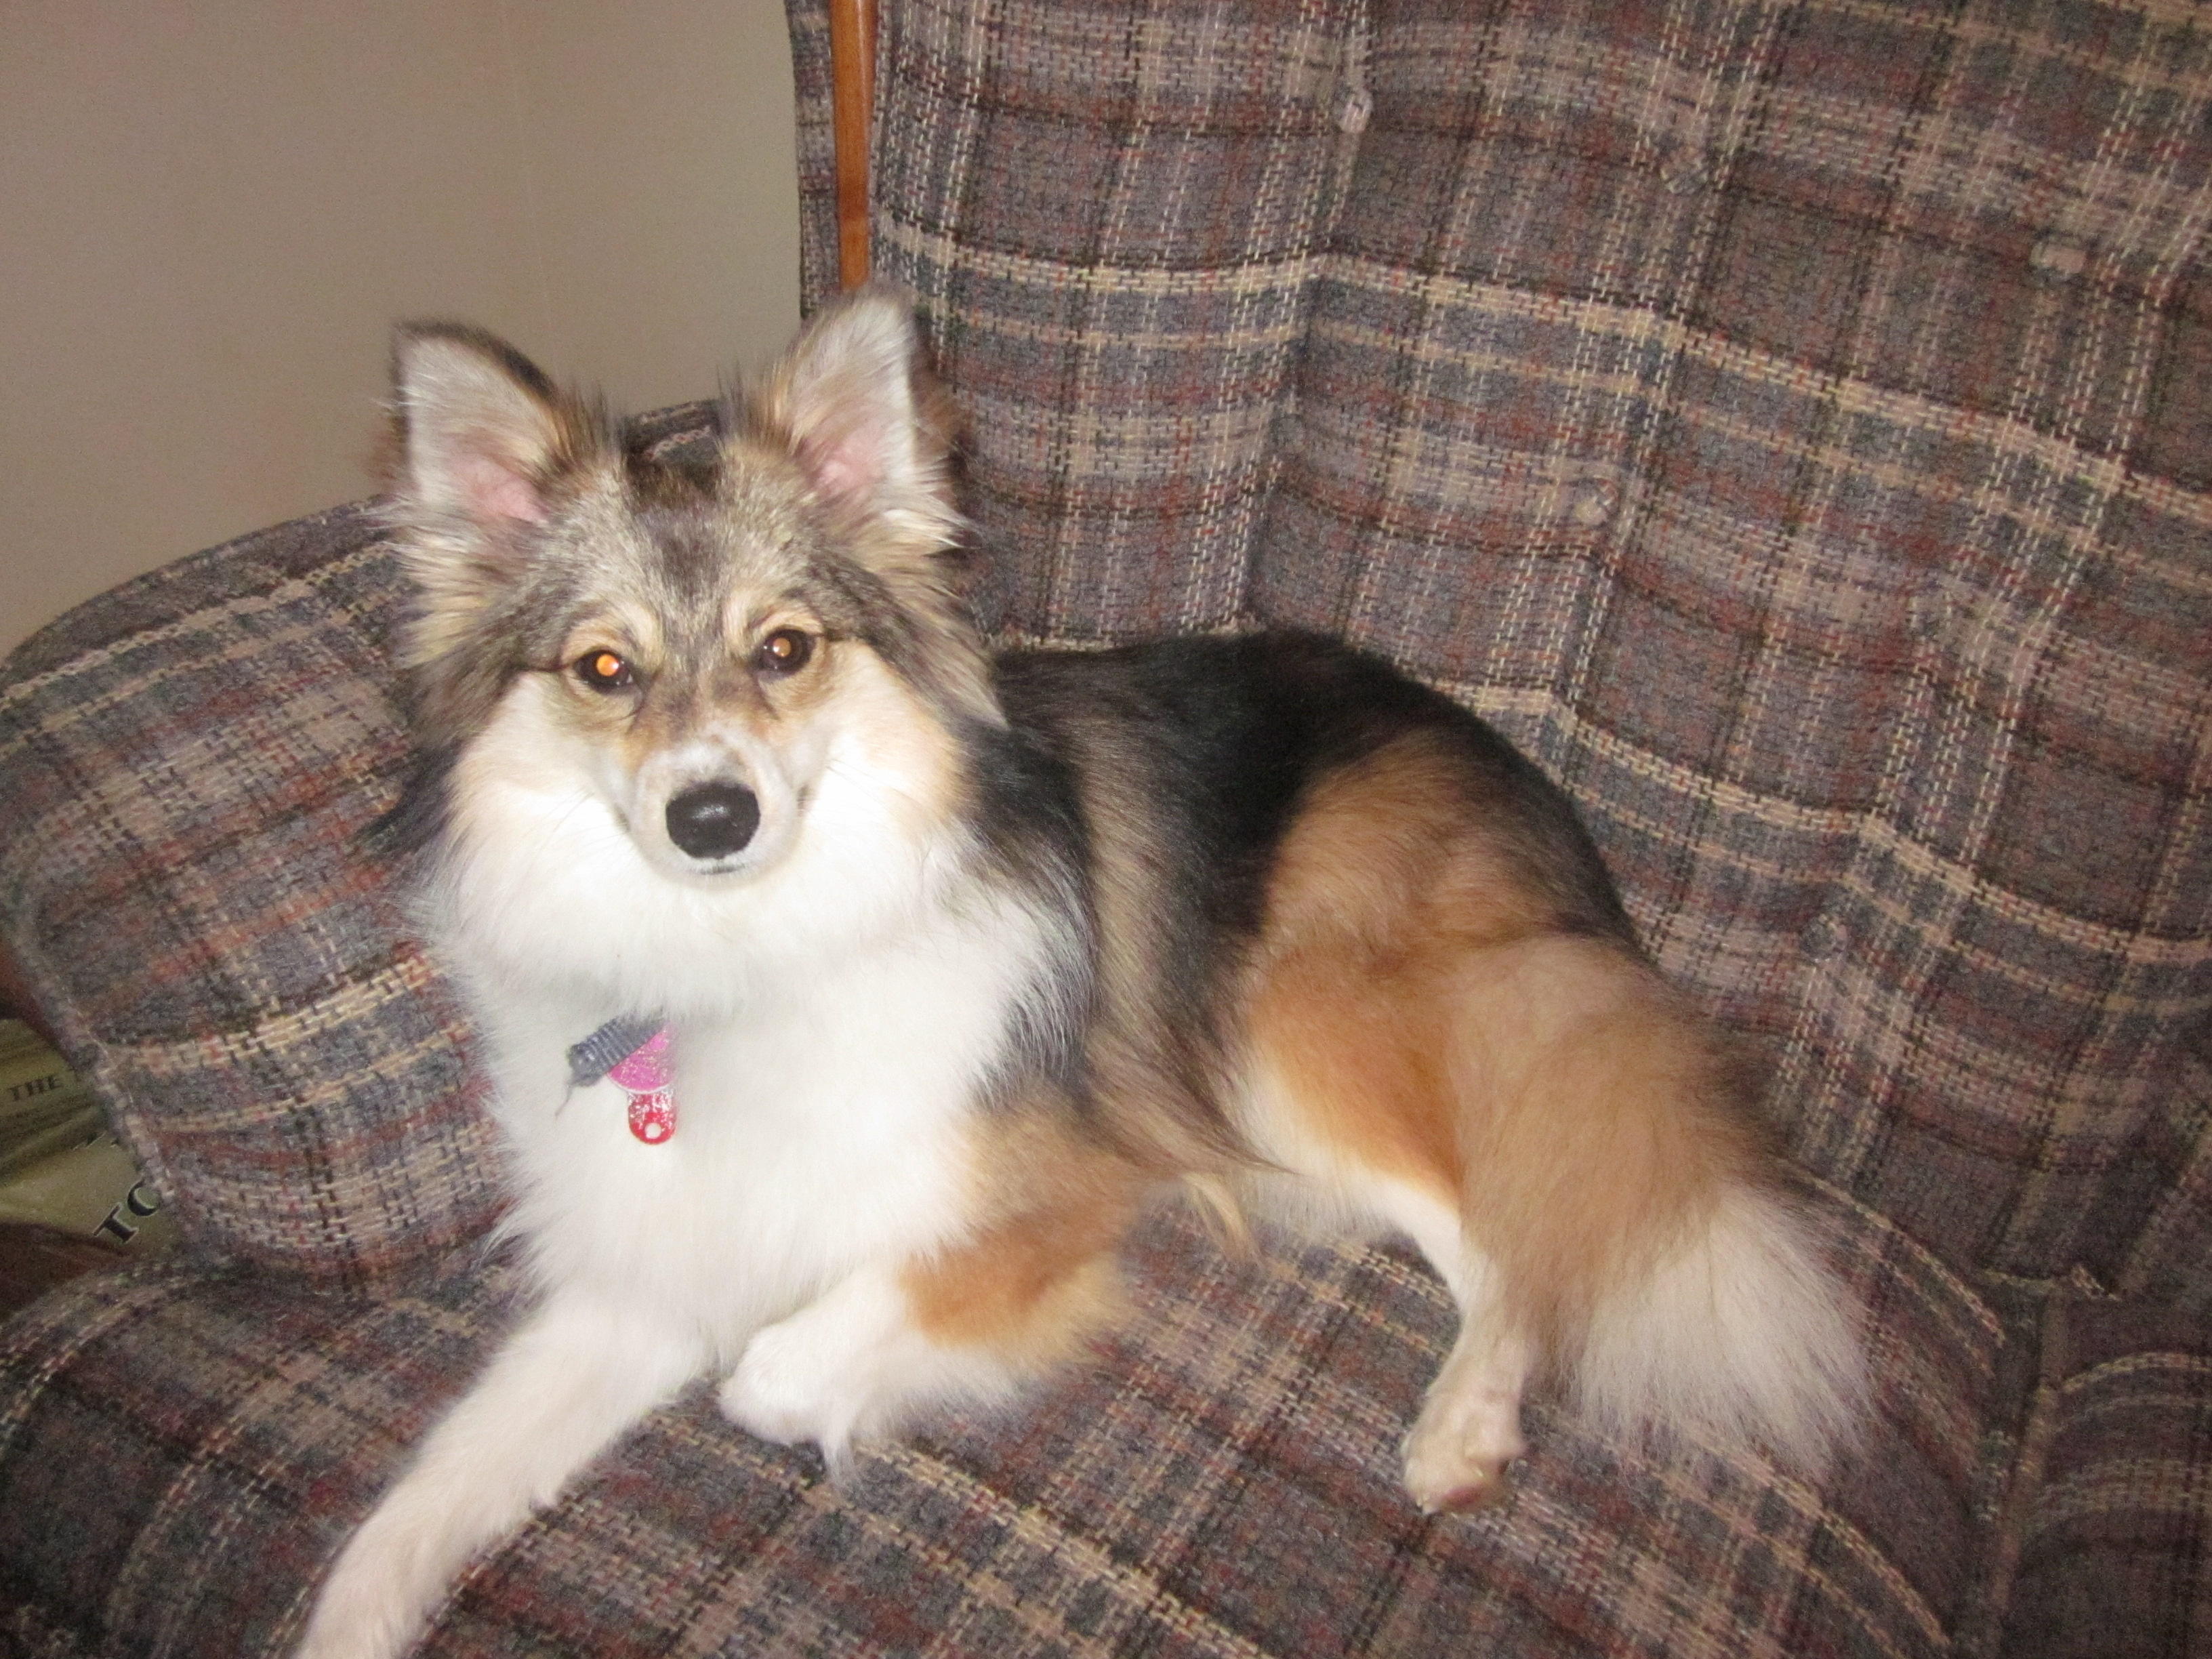 Poshies - Pomeranian and Sheltie Dog Mix Pictures and ... Pomeranian Mix